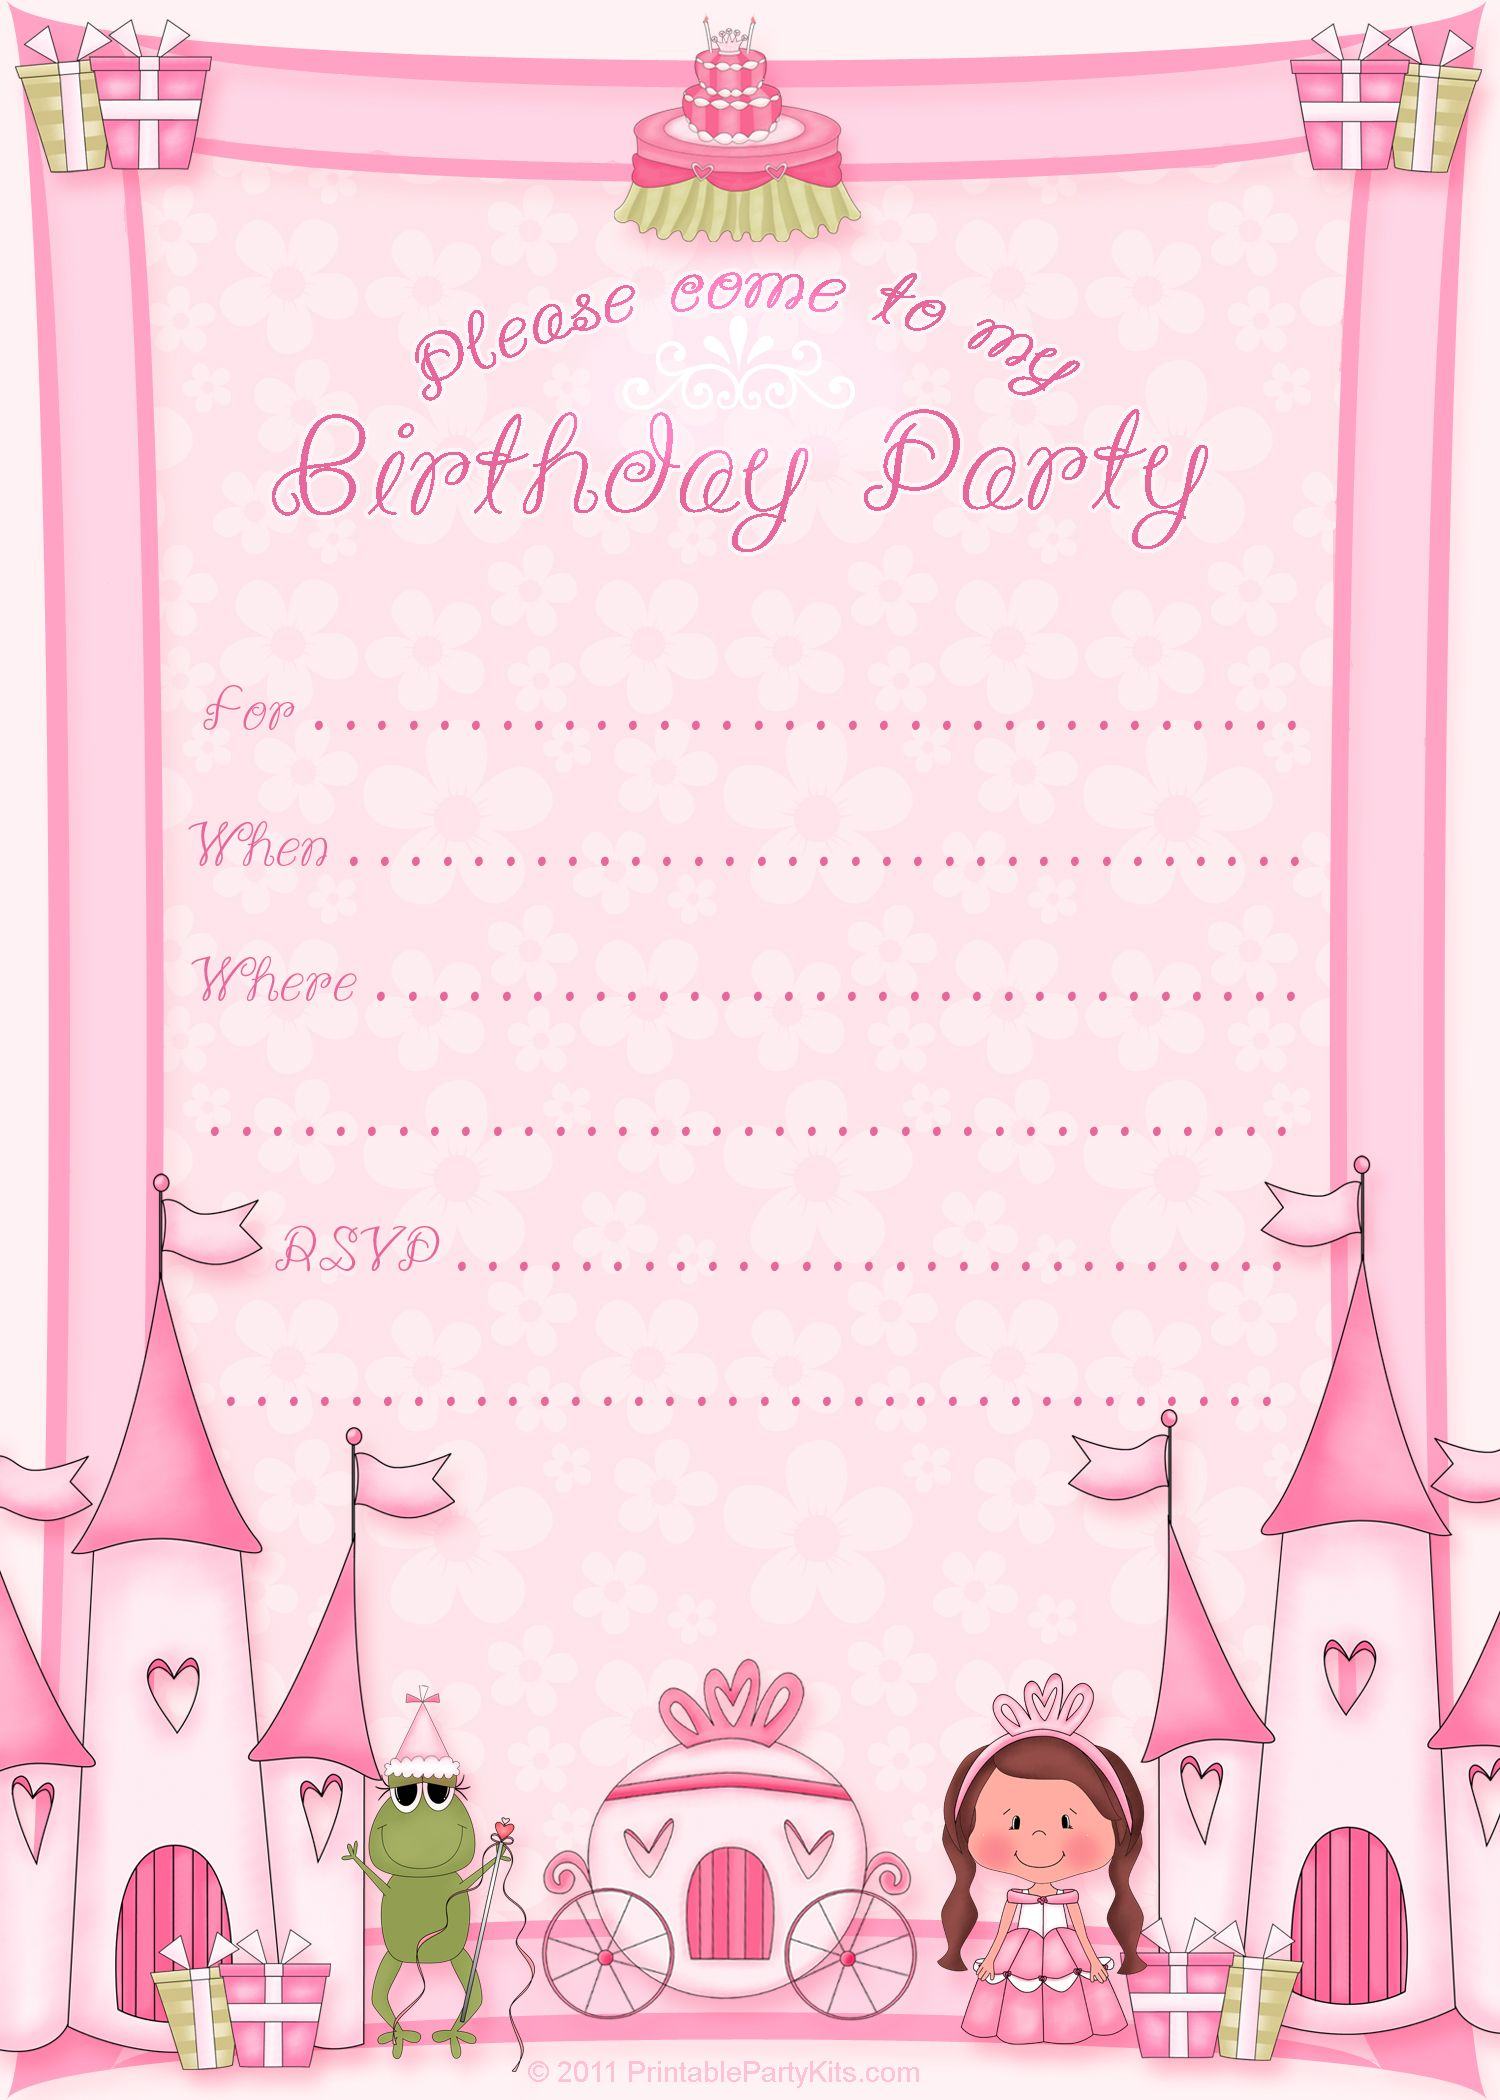 princess birthday invitation card template ; 32fa41dcd2a269796951f5fa1837bfda